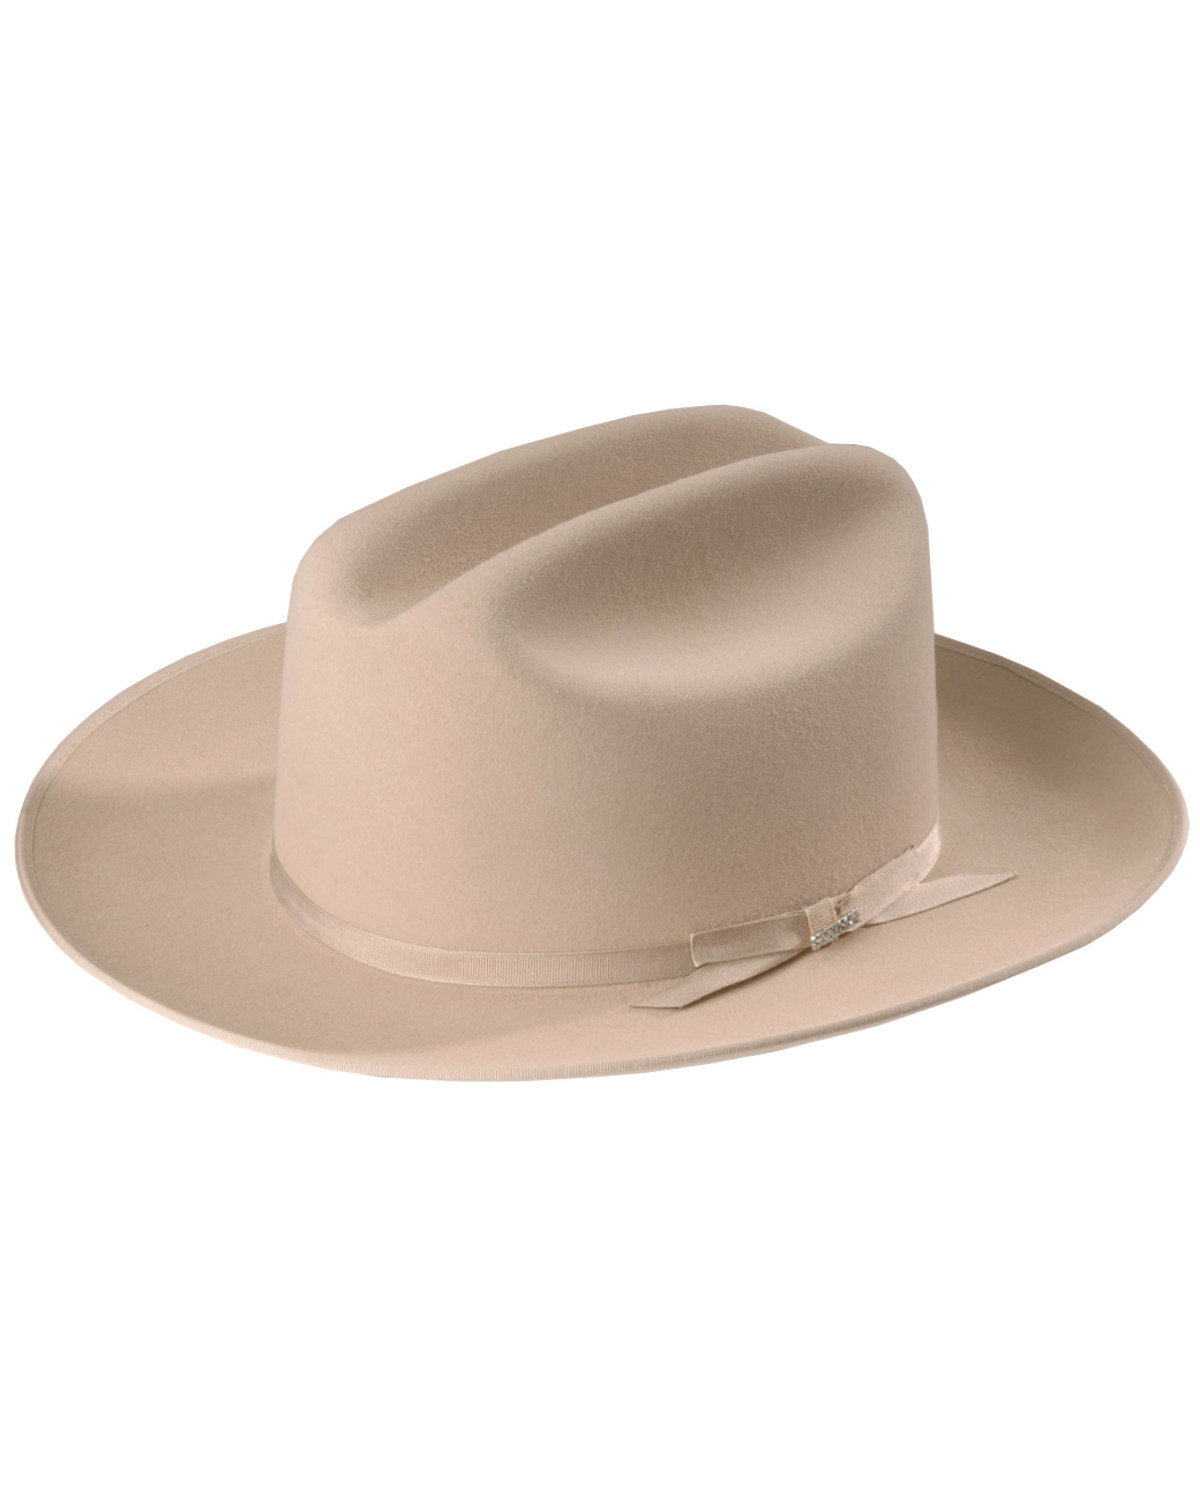 c81d8786c79 Stetson Open Road 6X Fur Felt Hat